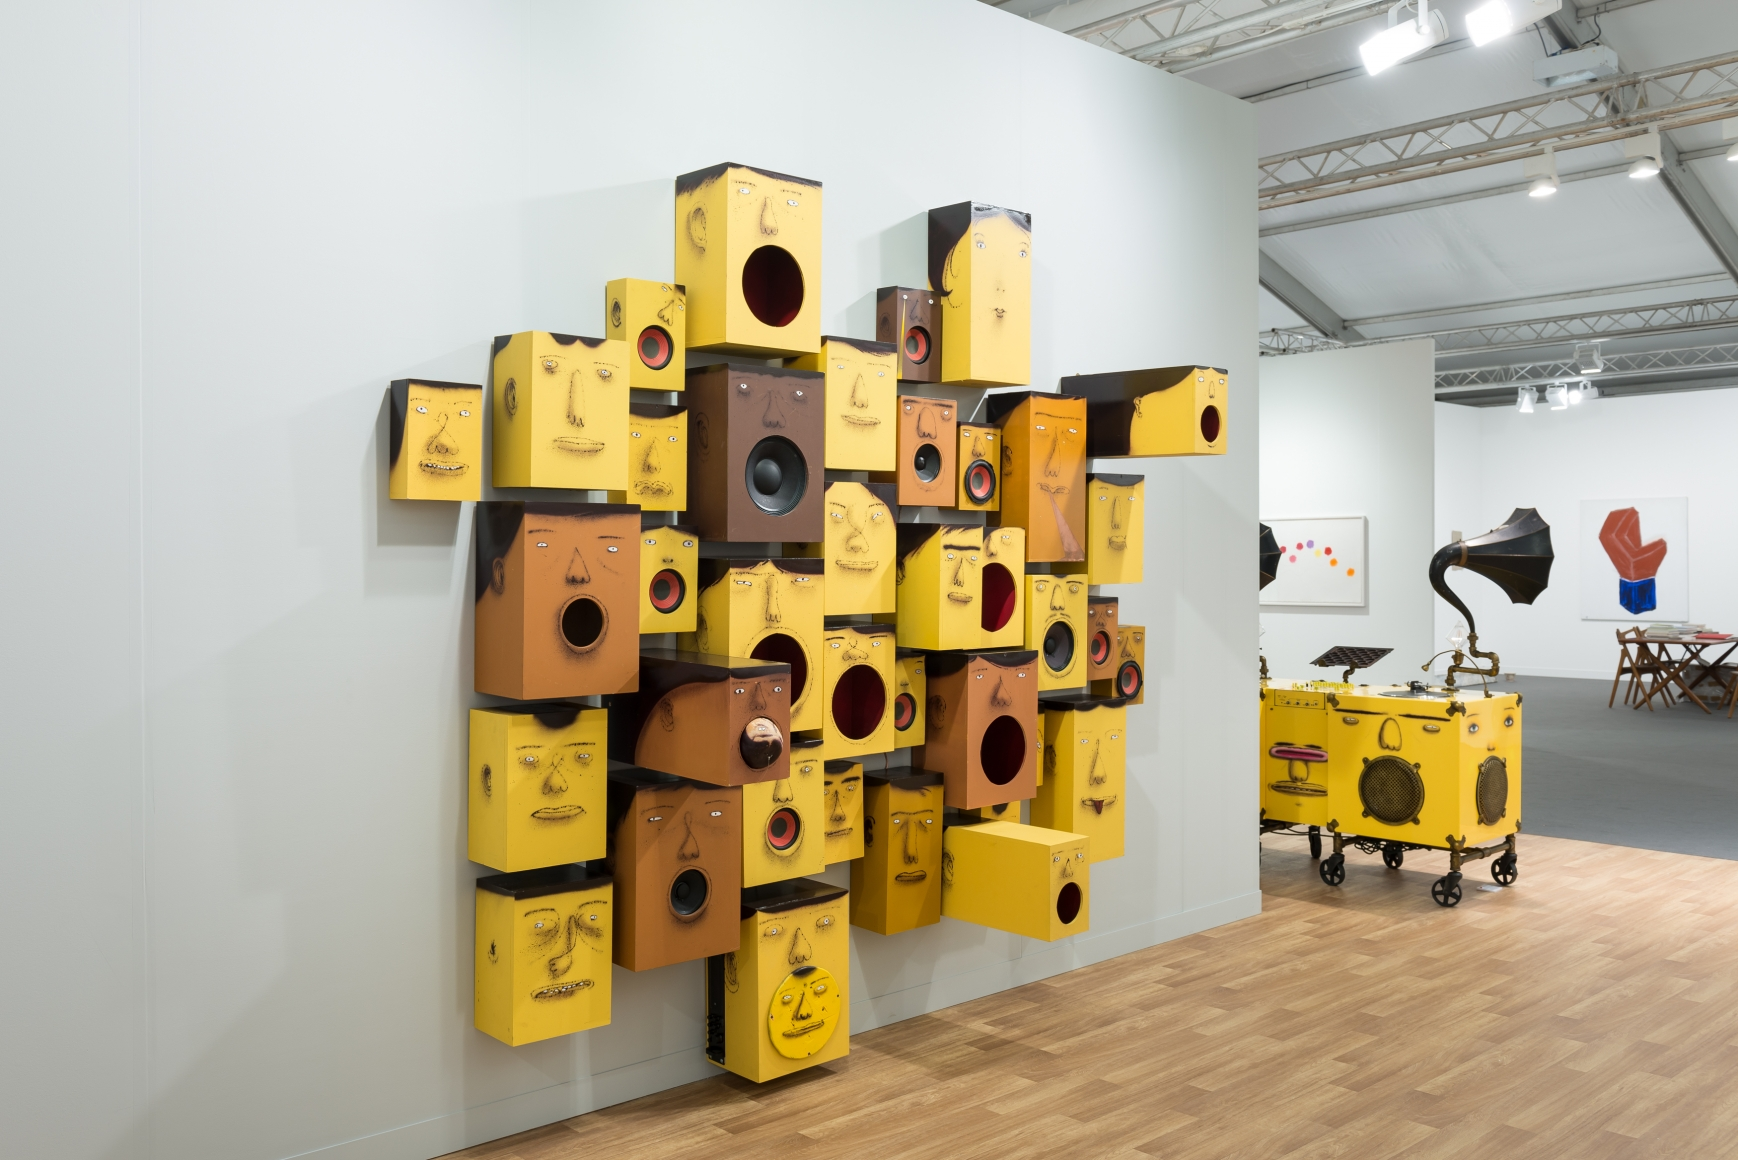 View of Lehmann Maupin's art fair booth at Frieze London 2018 featuring OSGEMEOS, perspective 6